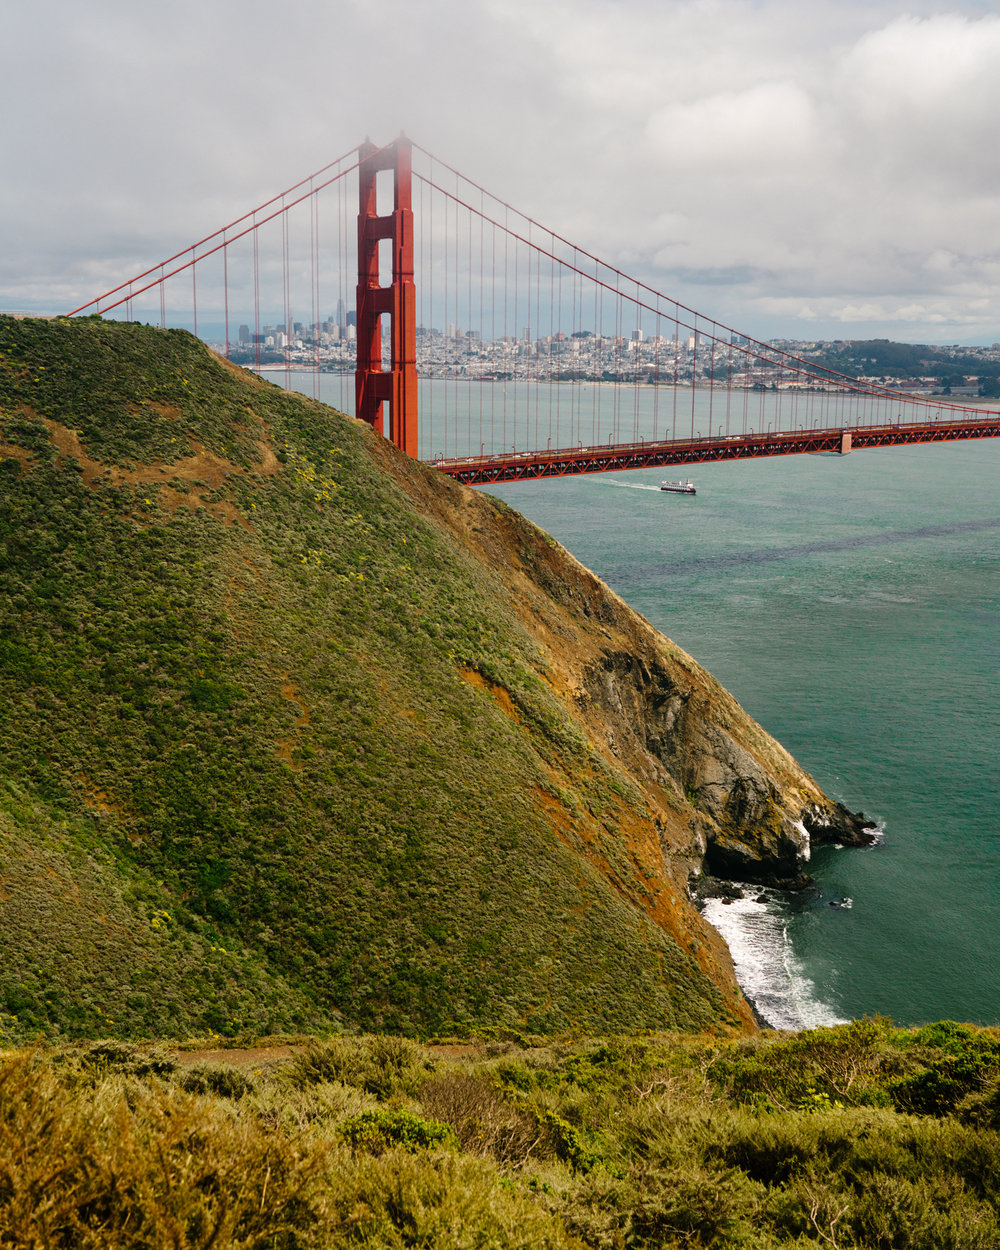 Best Views of San Francisco and the Golden Gate Bridge